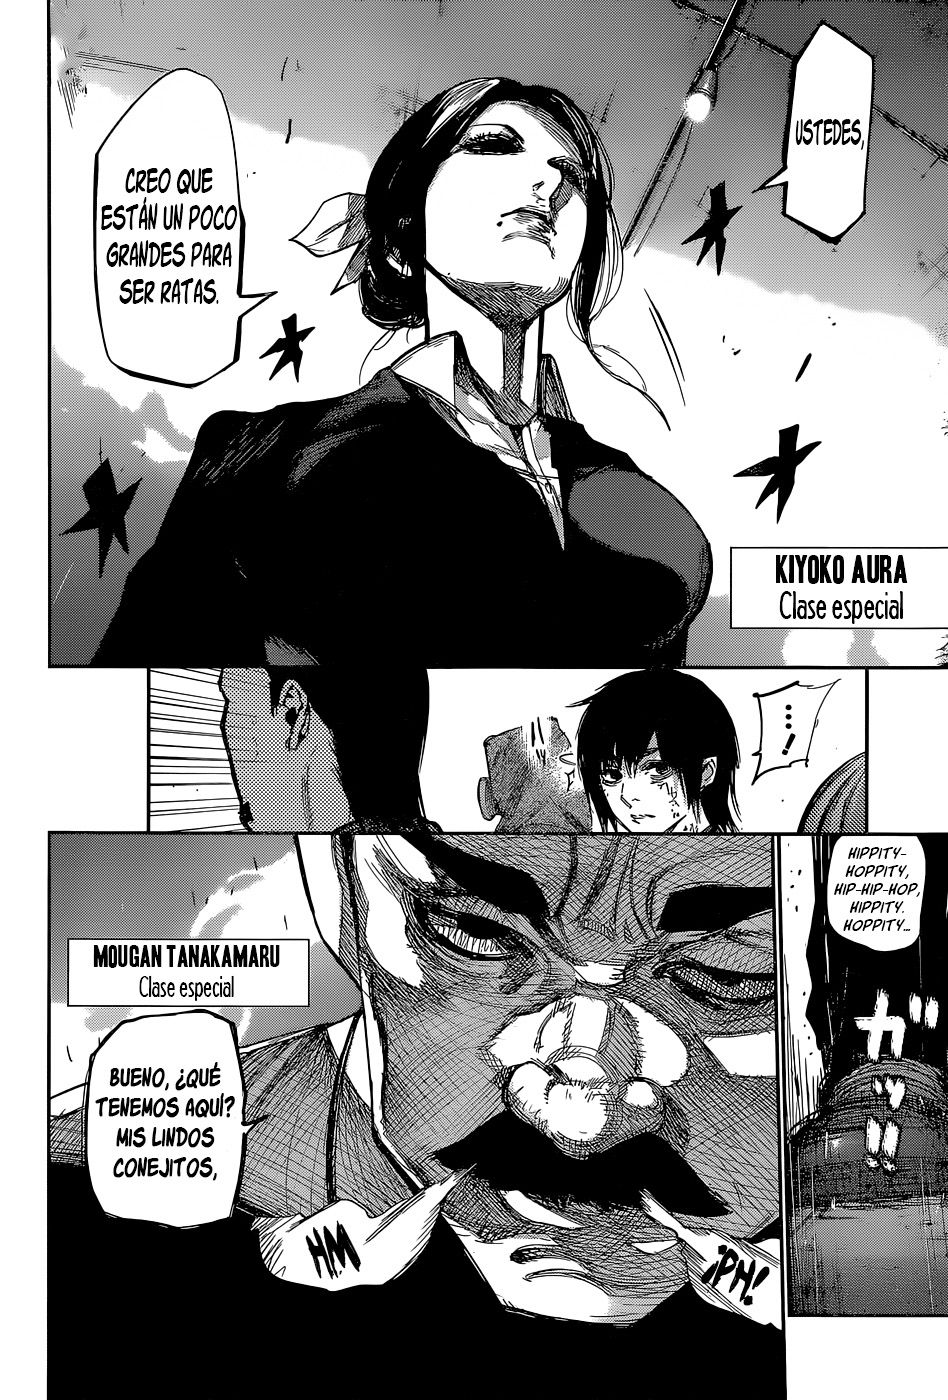 http://c5.ninemanga.com/es_manga/59/59/482473/a0833c8a1817526ac555f8d67727caf6.jpg Page 4